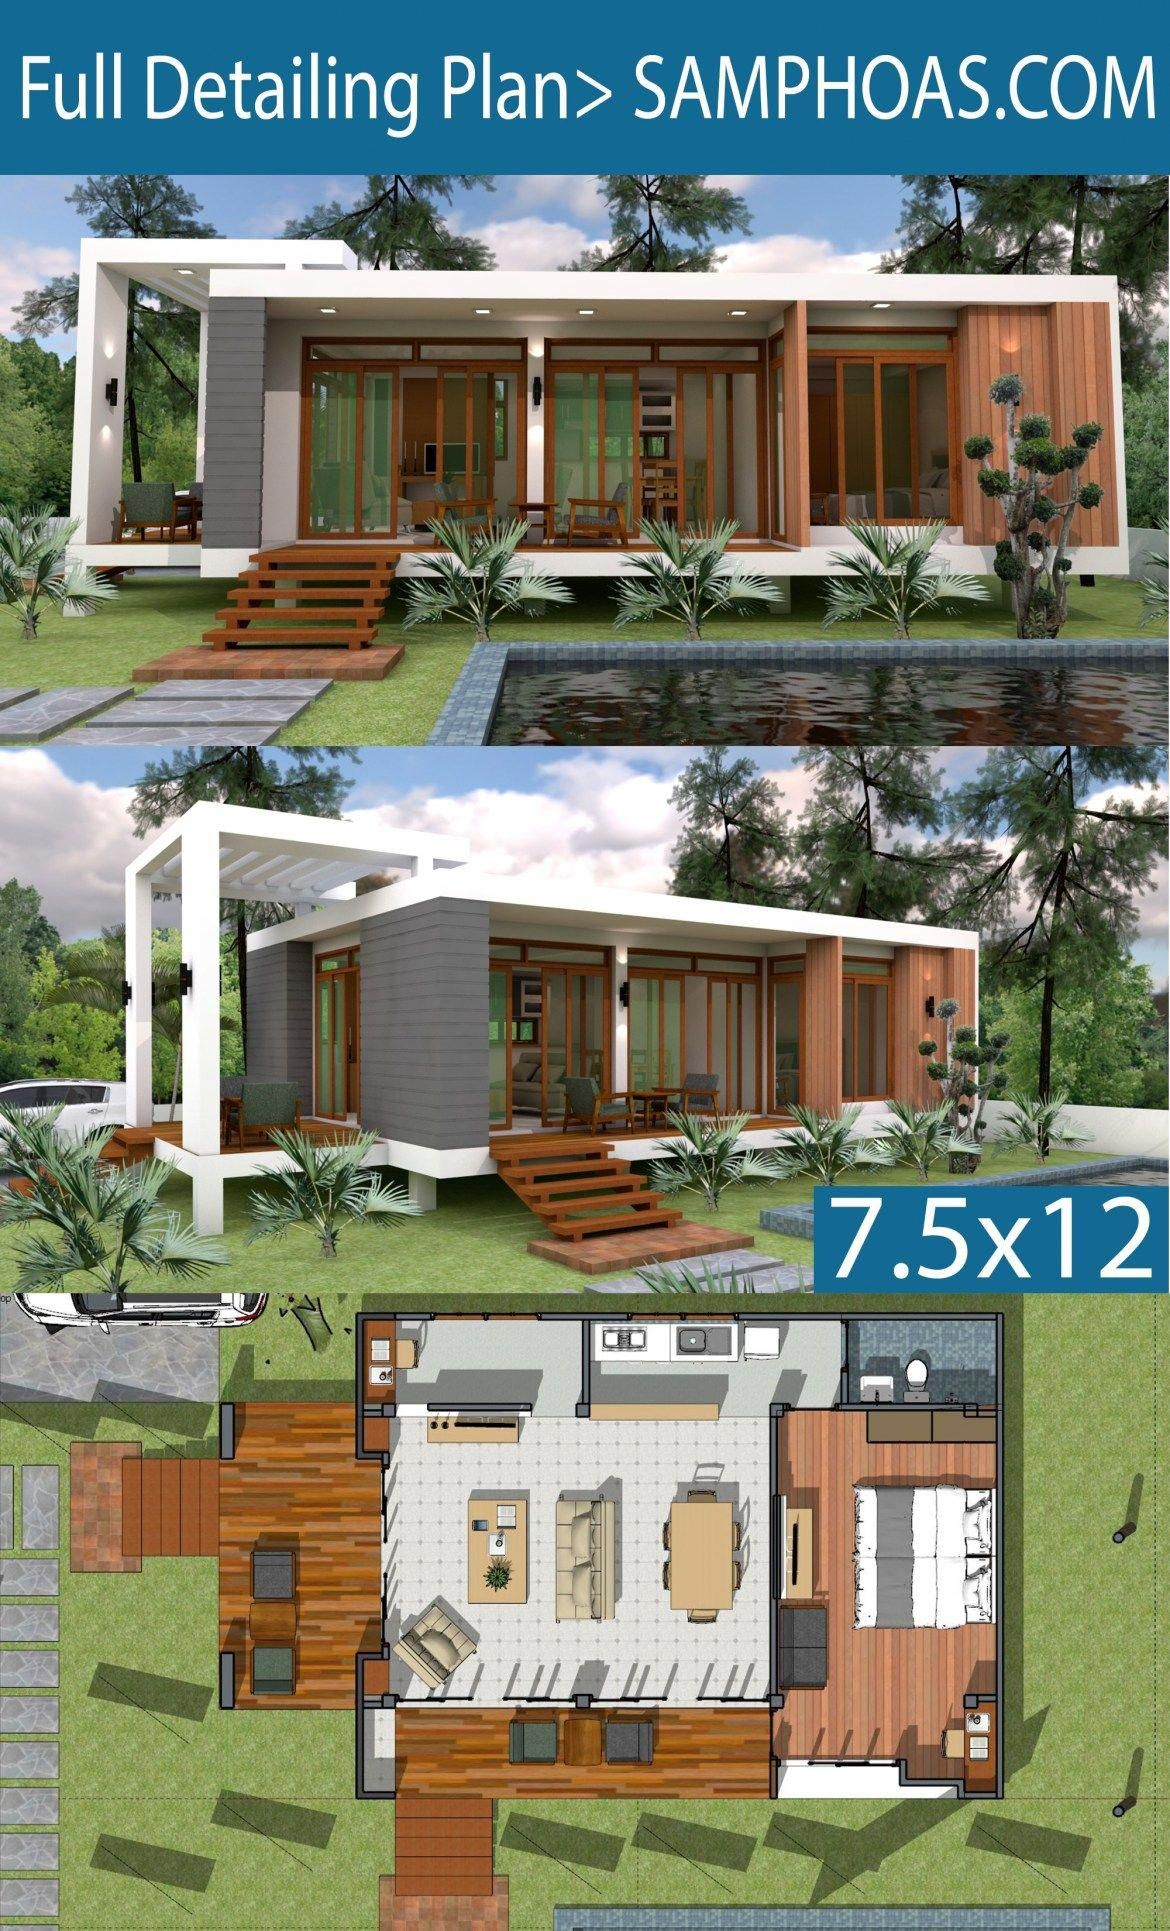 Number One Online Home Decorating Stores Besthomeinteriors Cottage Style House Plans House Design Small House Design